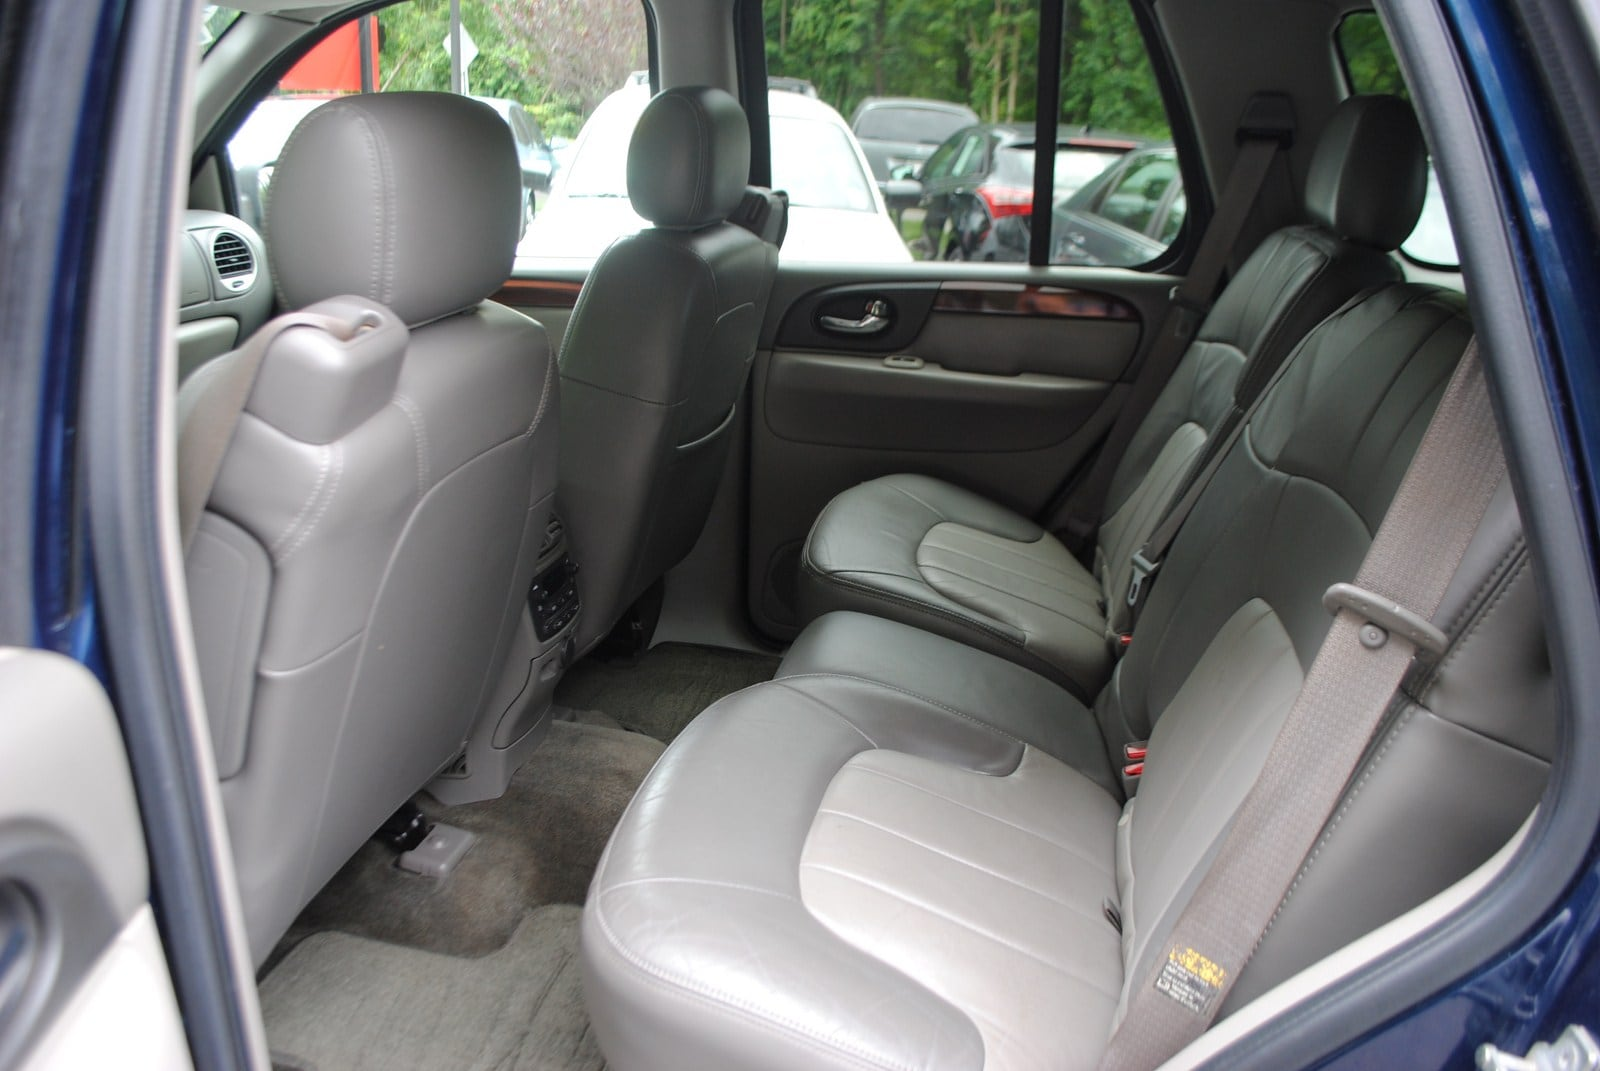 2004 Gmc Envoy Parts Manual 2002 Diagram On Fuse Box Used For Sale West Milford Ramseycorp Com Inside 1600x1071